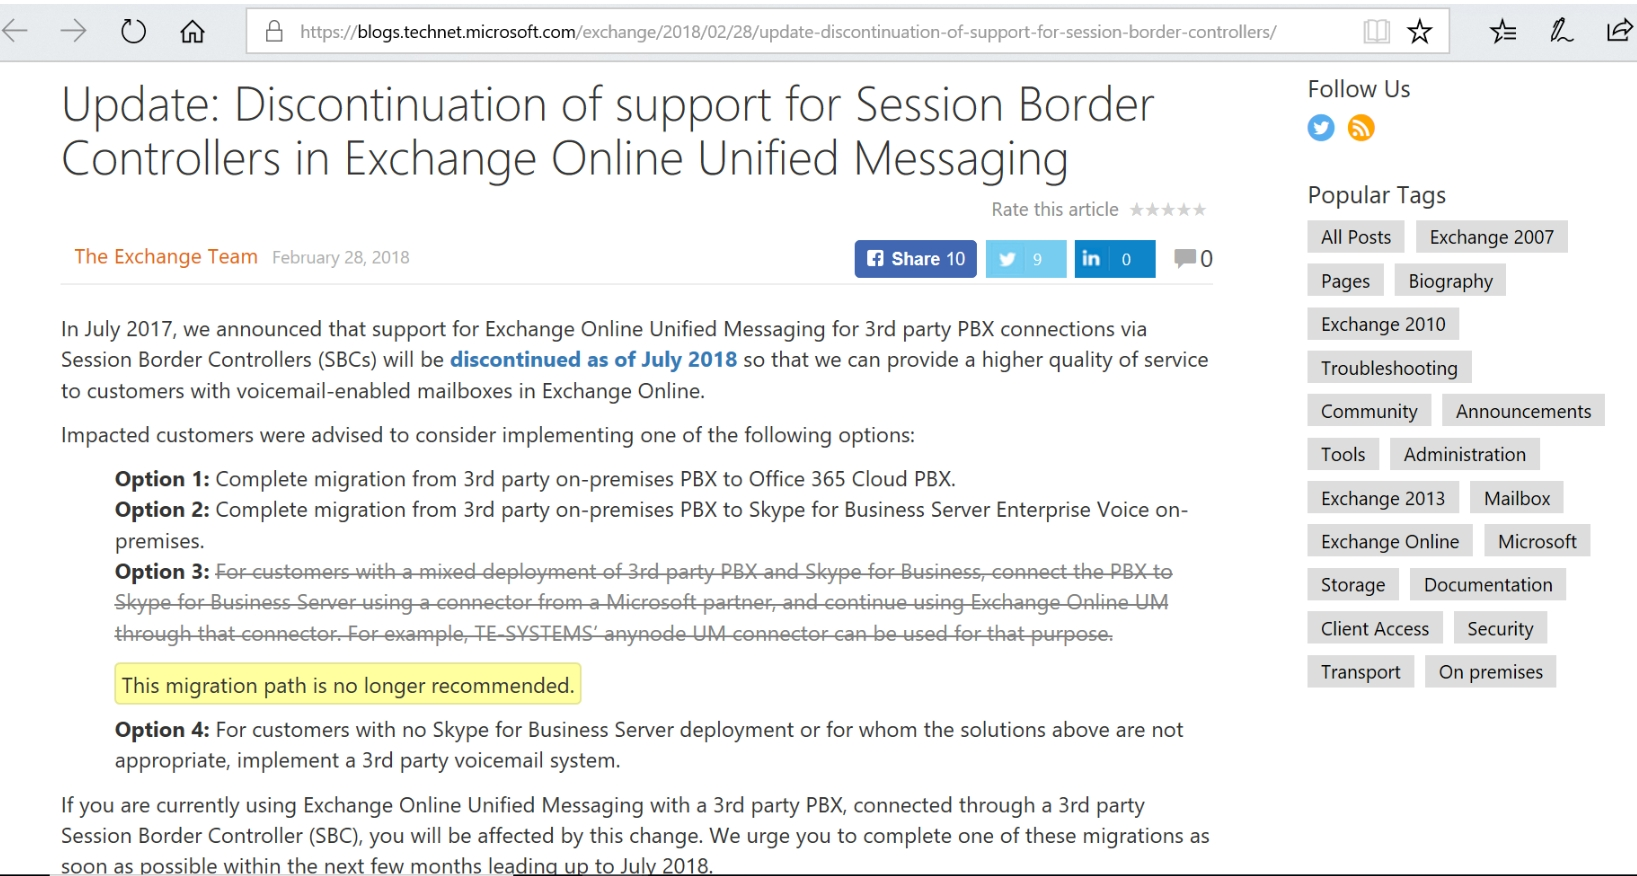 Discontinuation of support for Session Border Controllers in